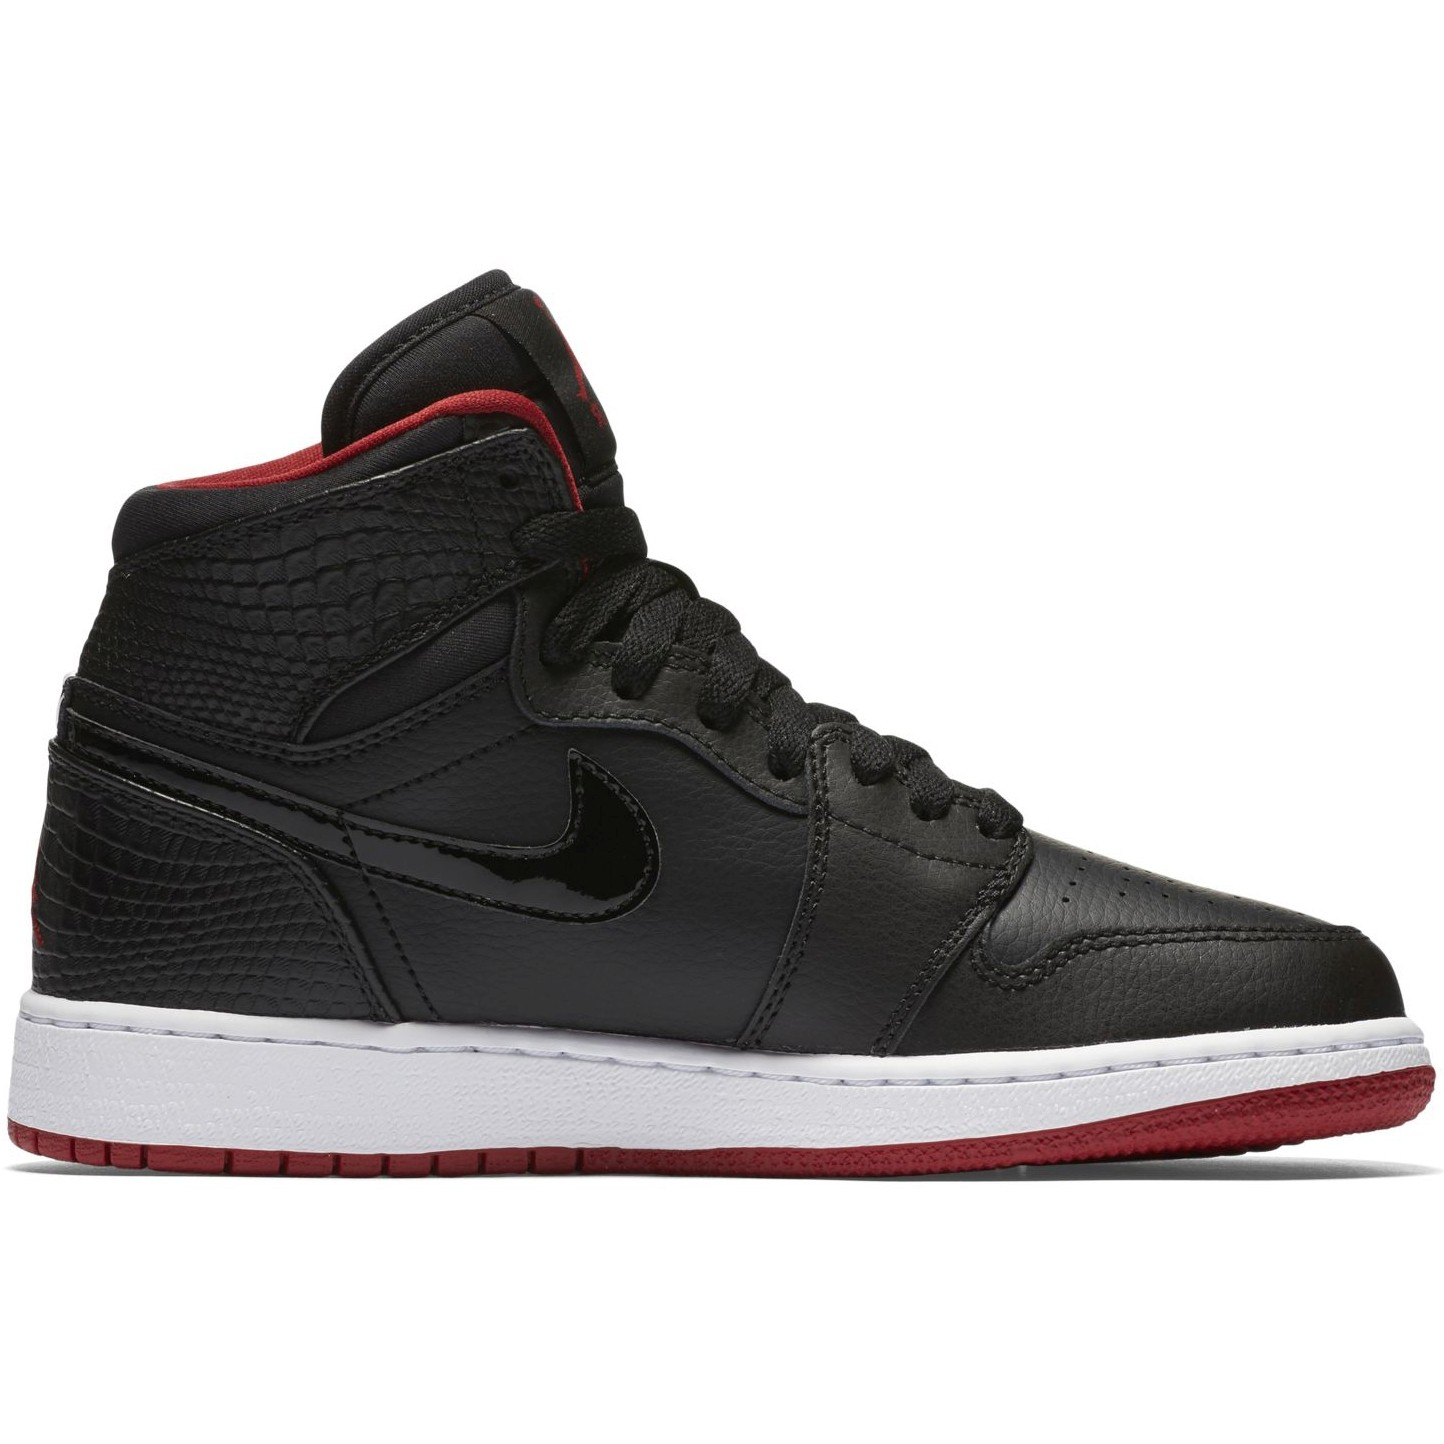 Air Jordan 1 Retro High GS Black Gym Red White - Laisvalaikio batai